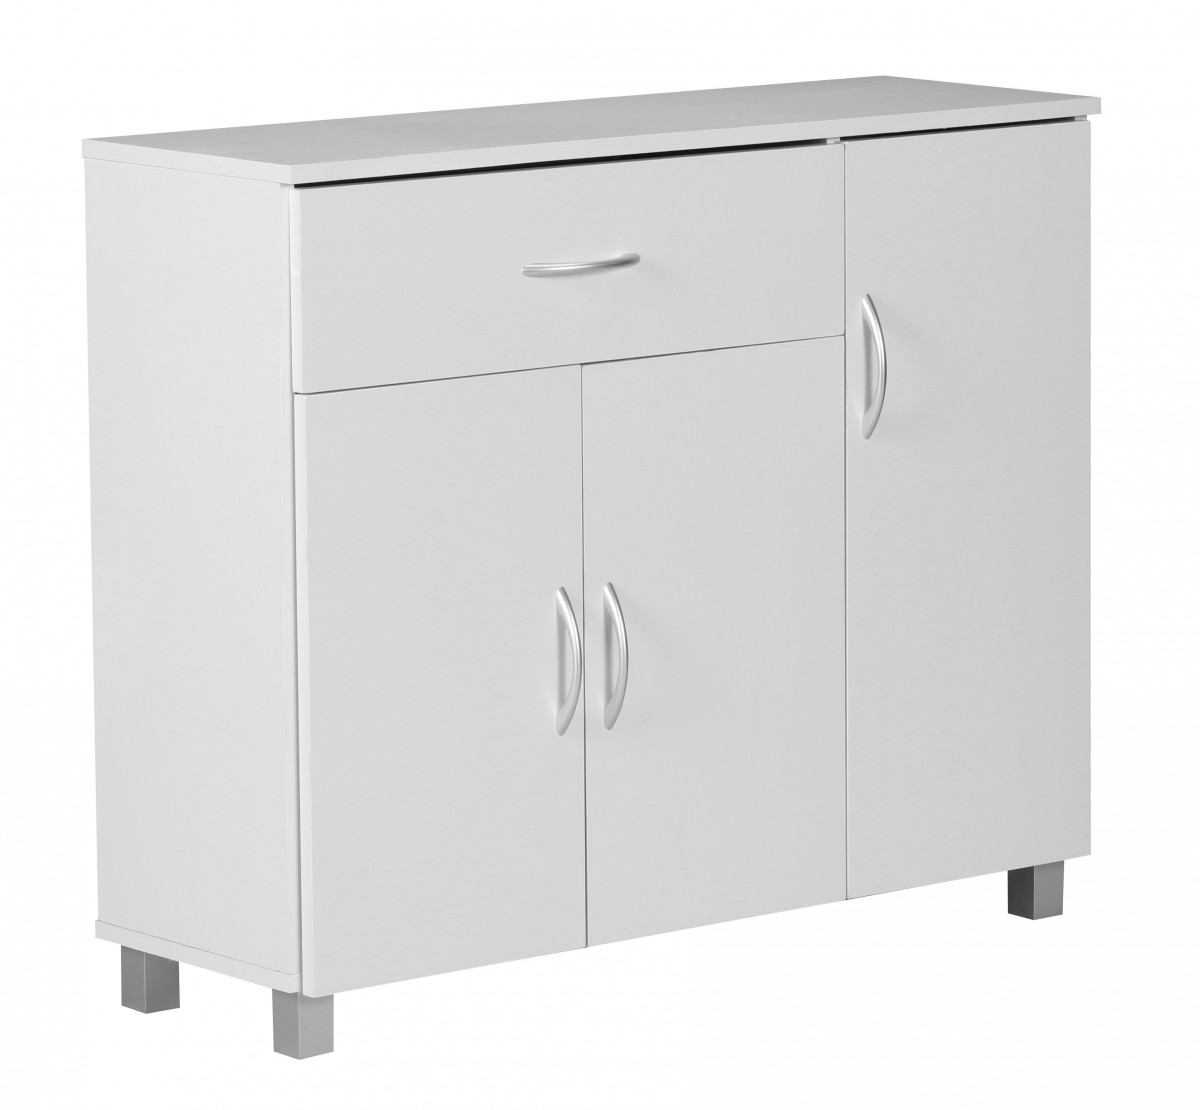 Wohnling sideboard doors drawer cupboard buffet furniture for Sideboard 90 cm hoch